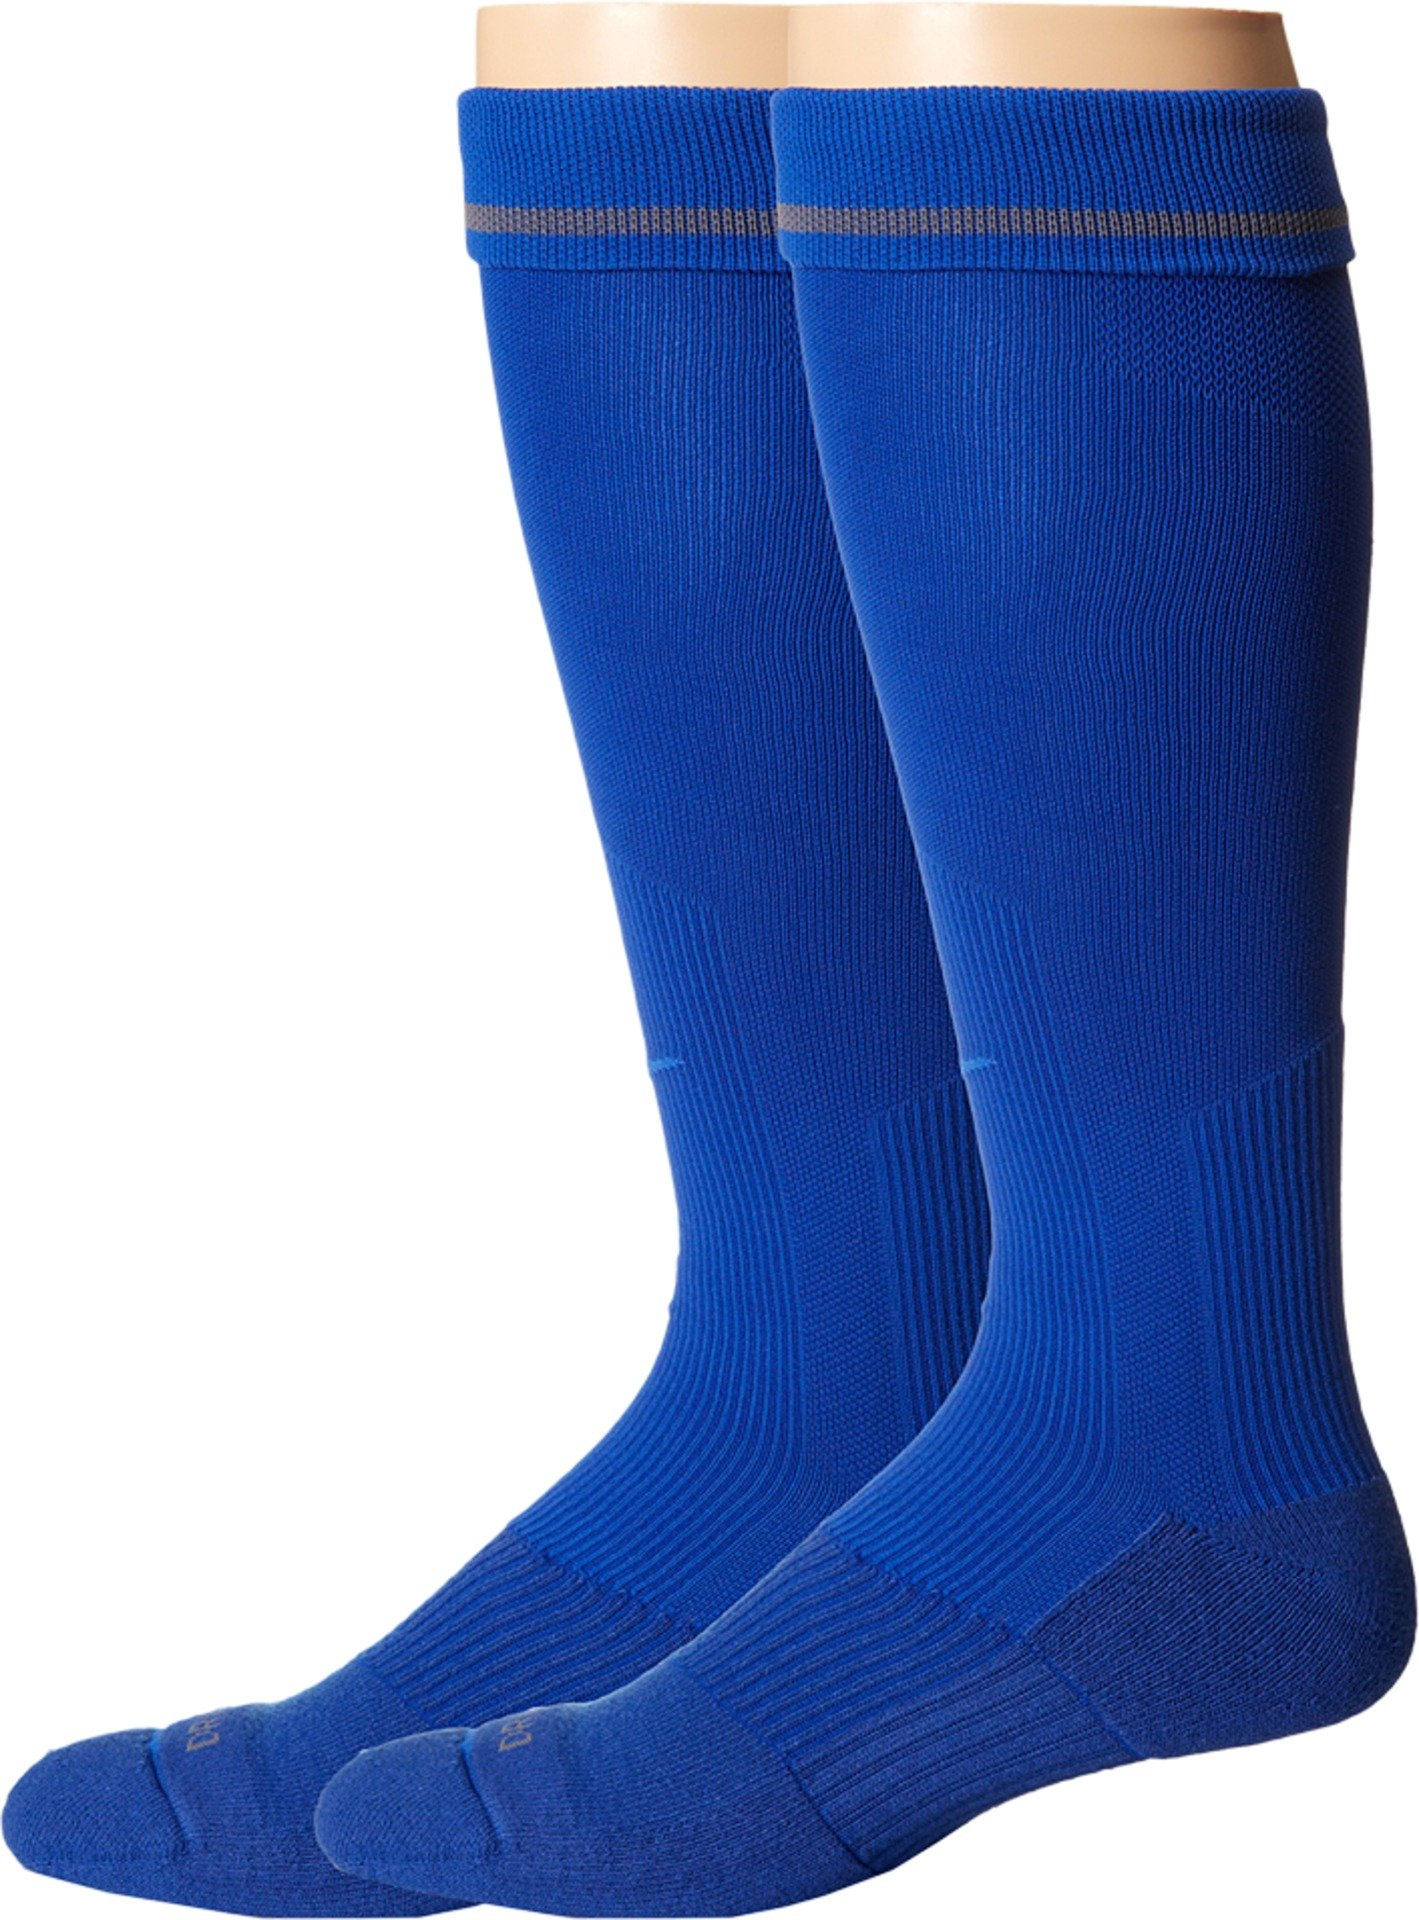 Nike Performance Knee-High Baseball Sock Game Royal Size Large by Nike